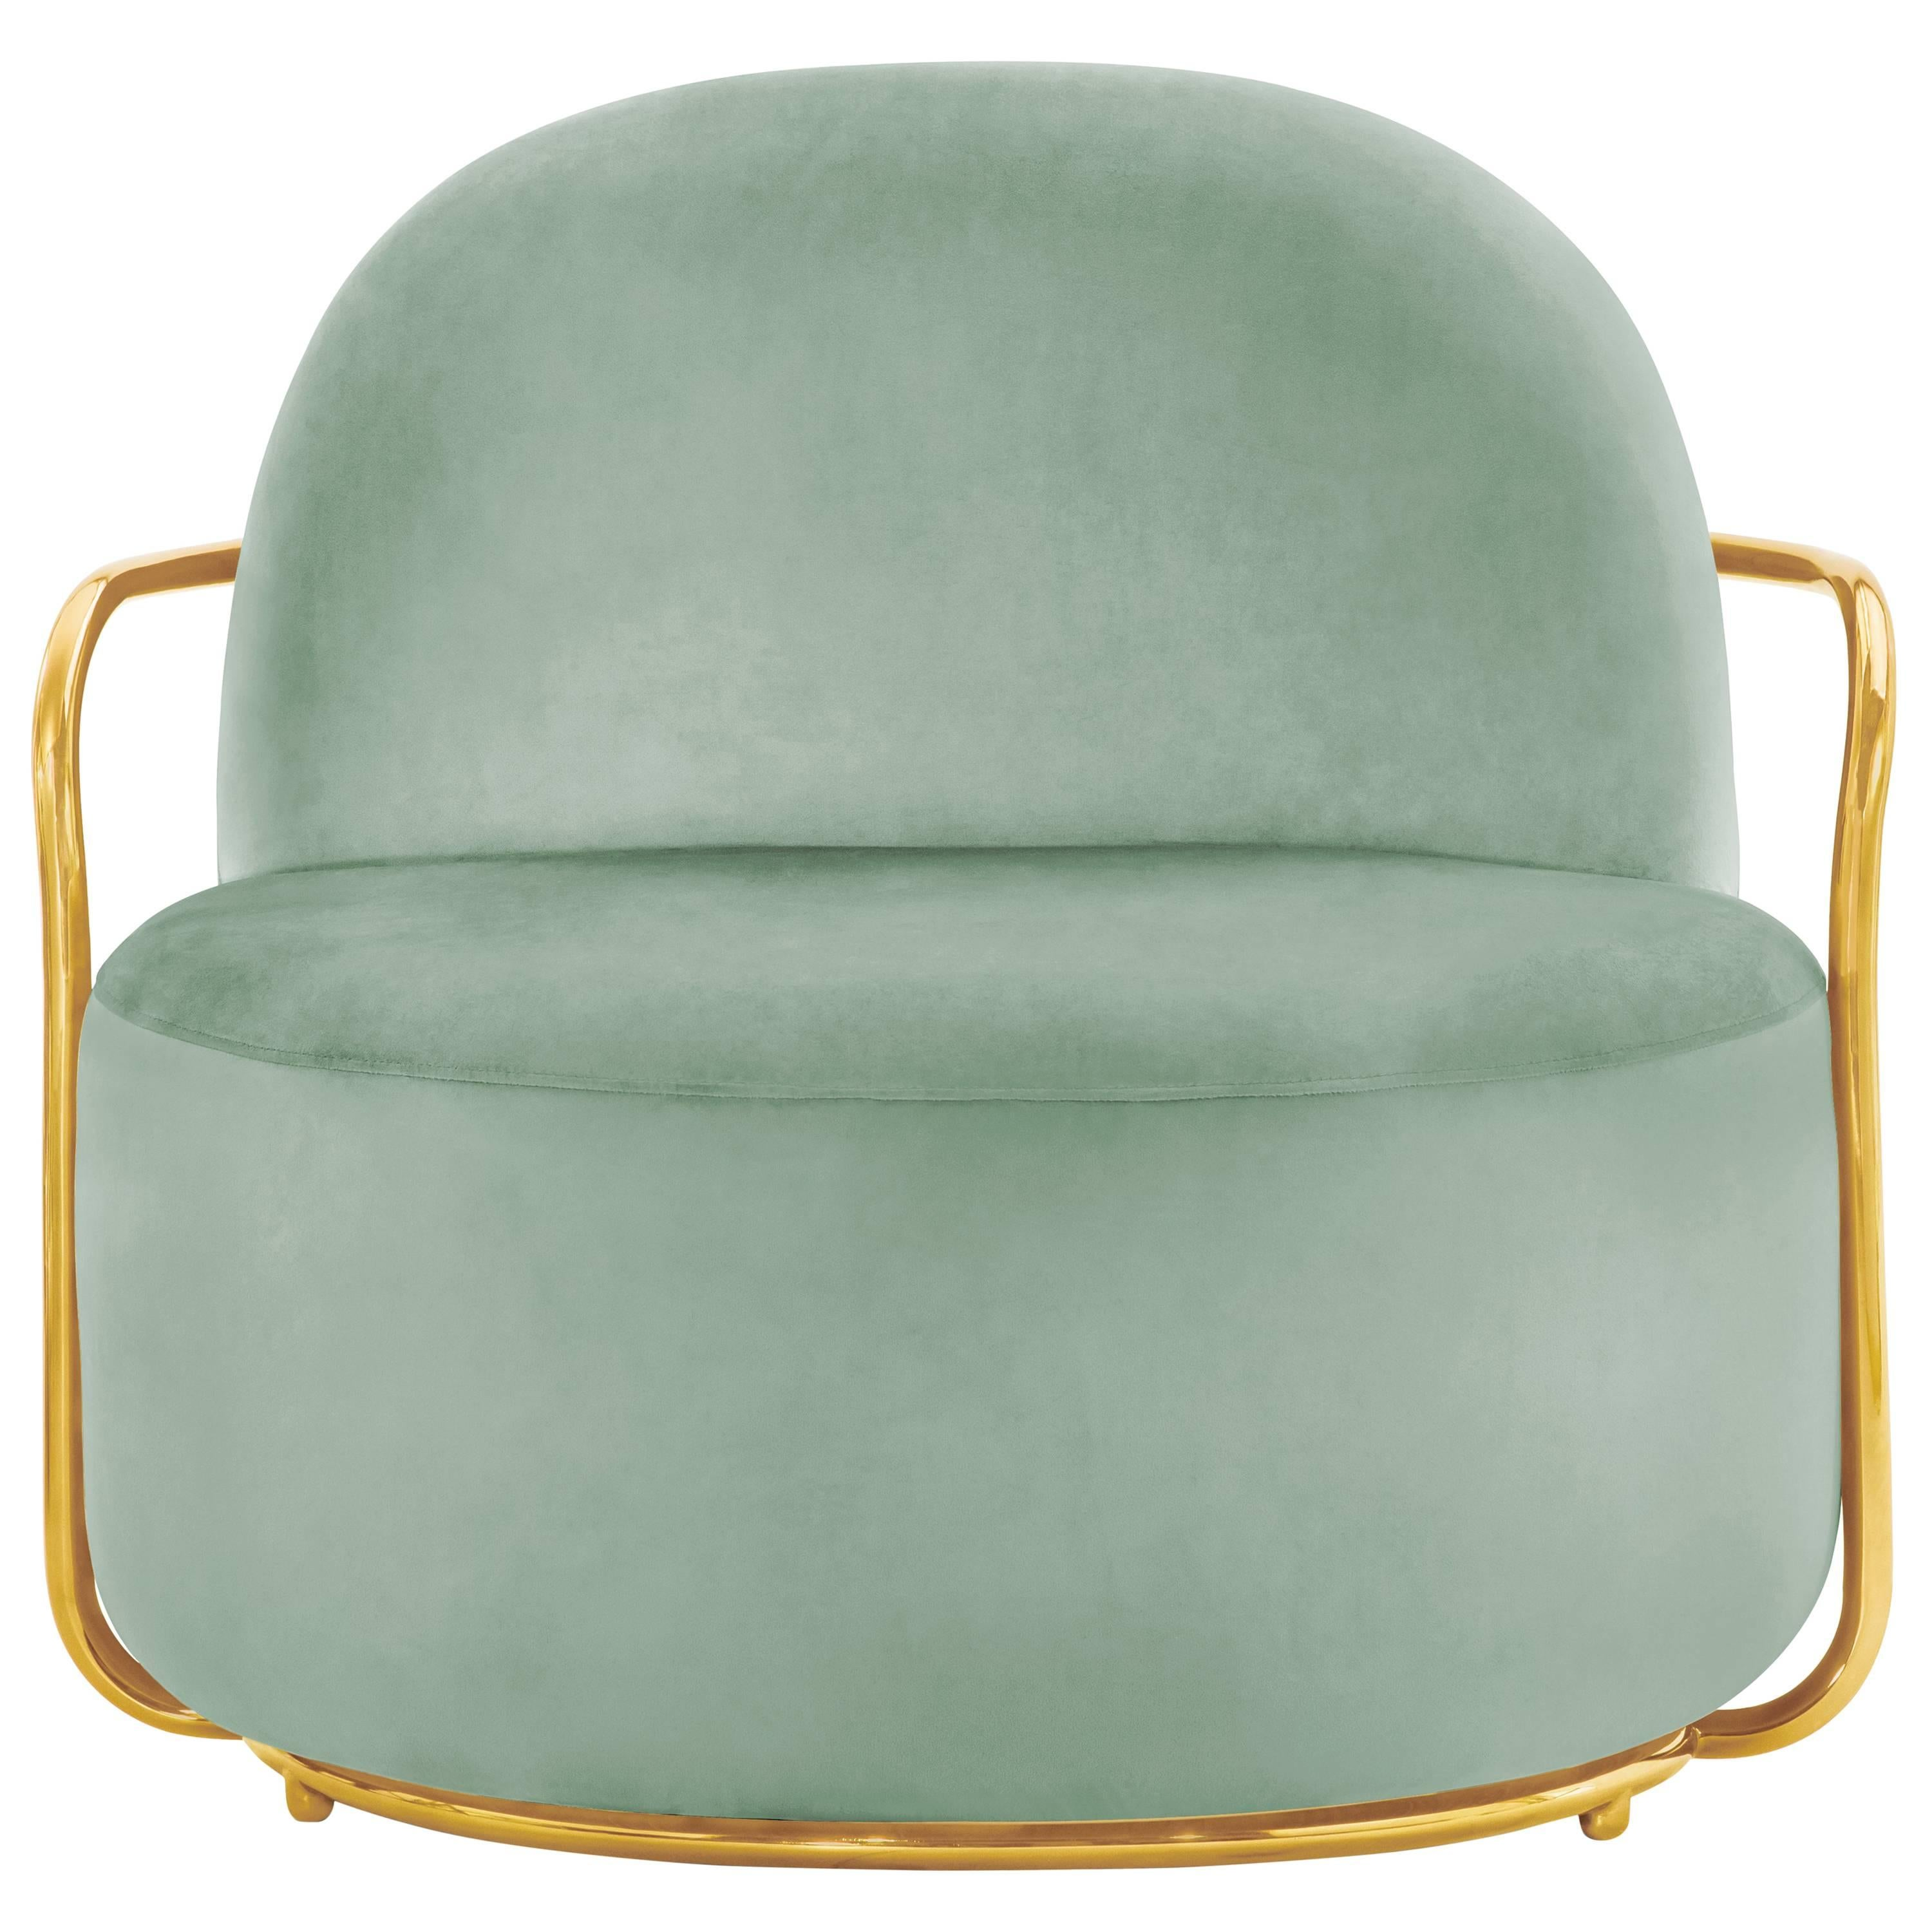 Orion Lounge Chair Jade by Nika Zupanc for Scarlet Splendour